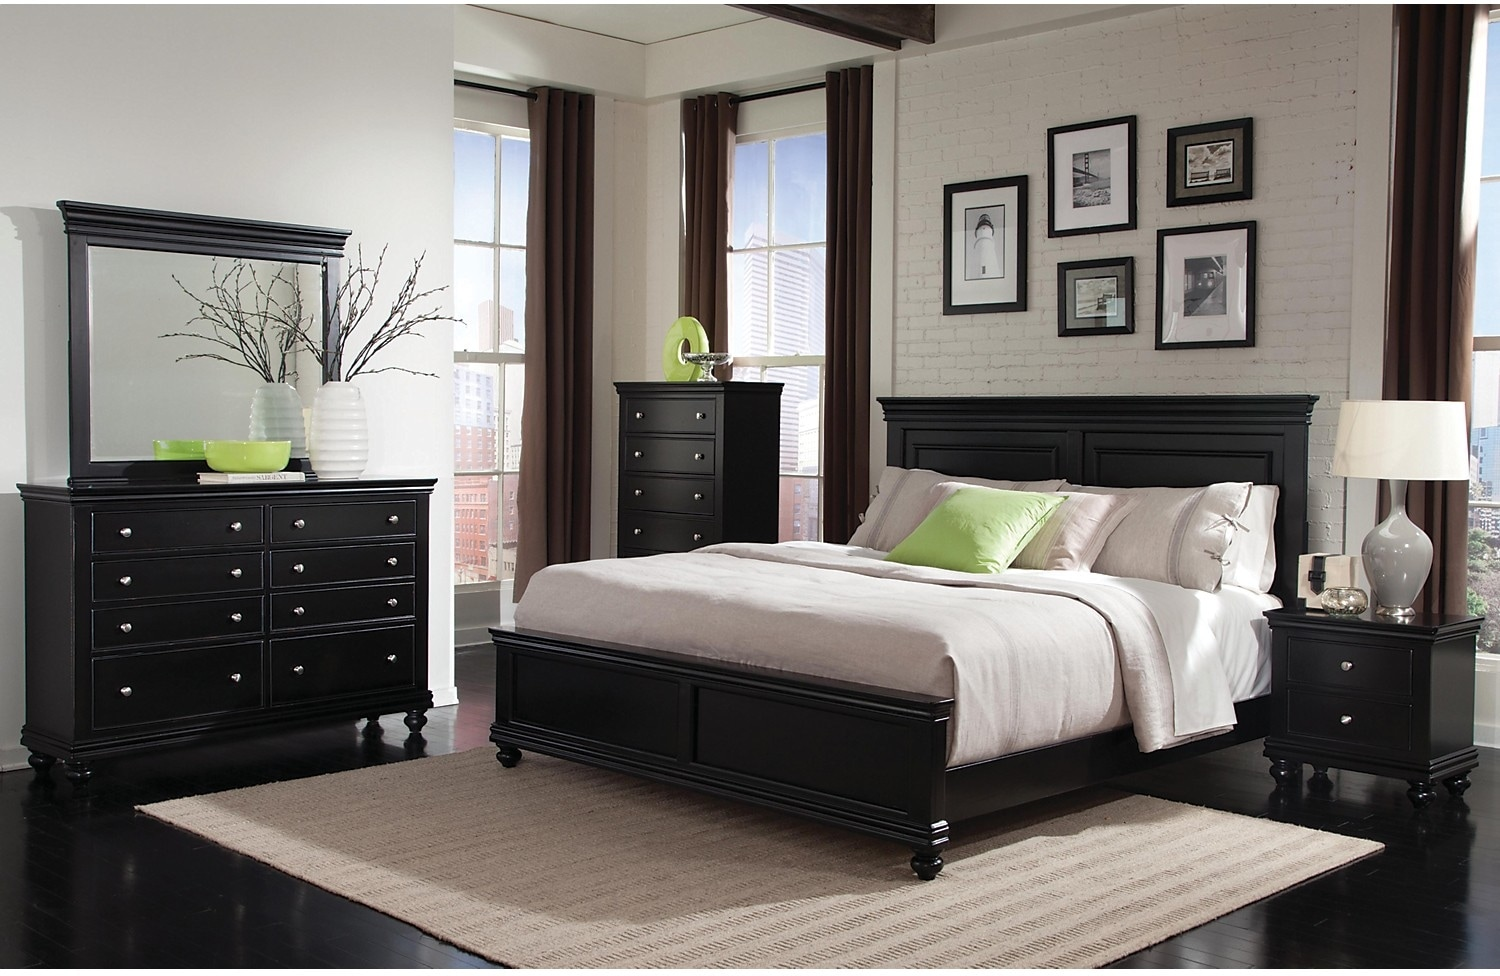 black bedroom furniture sets king | Bridgeport 7-Piece King Bedroom Set - Black | The Brick